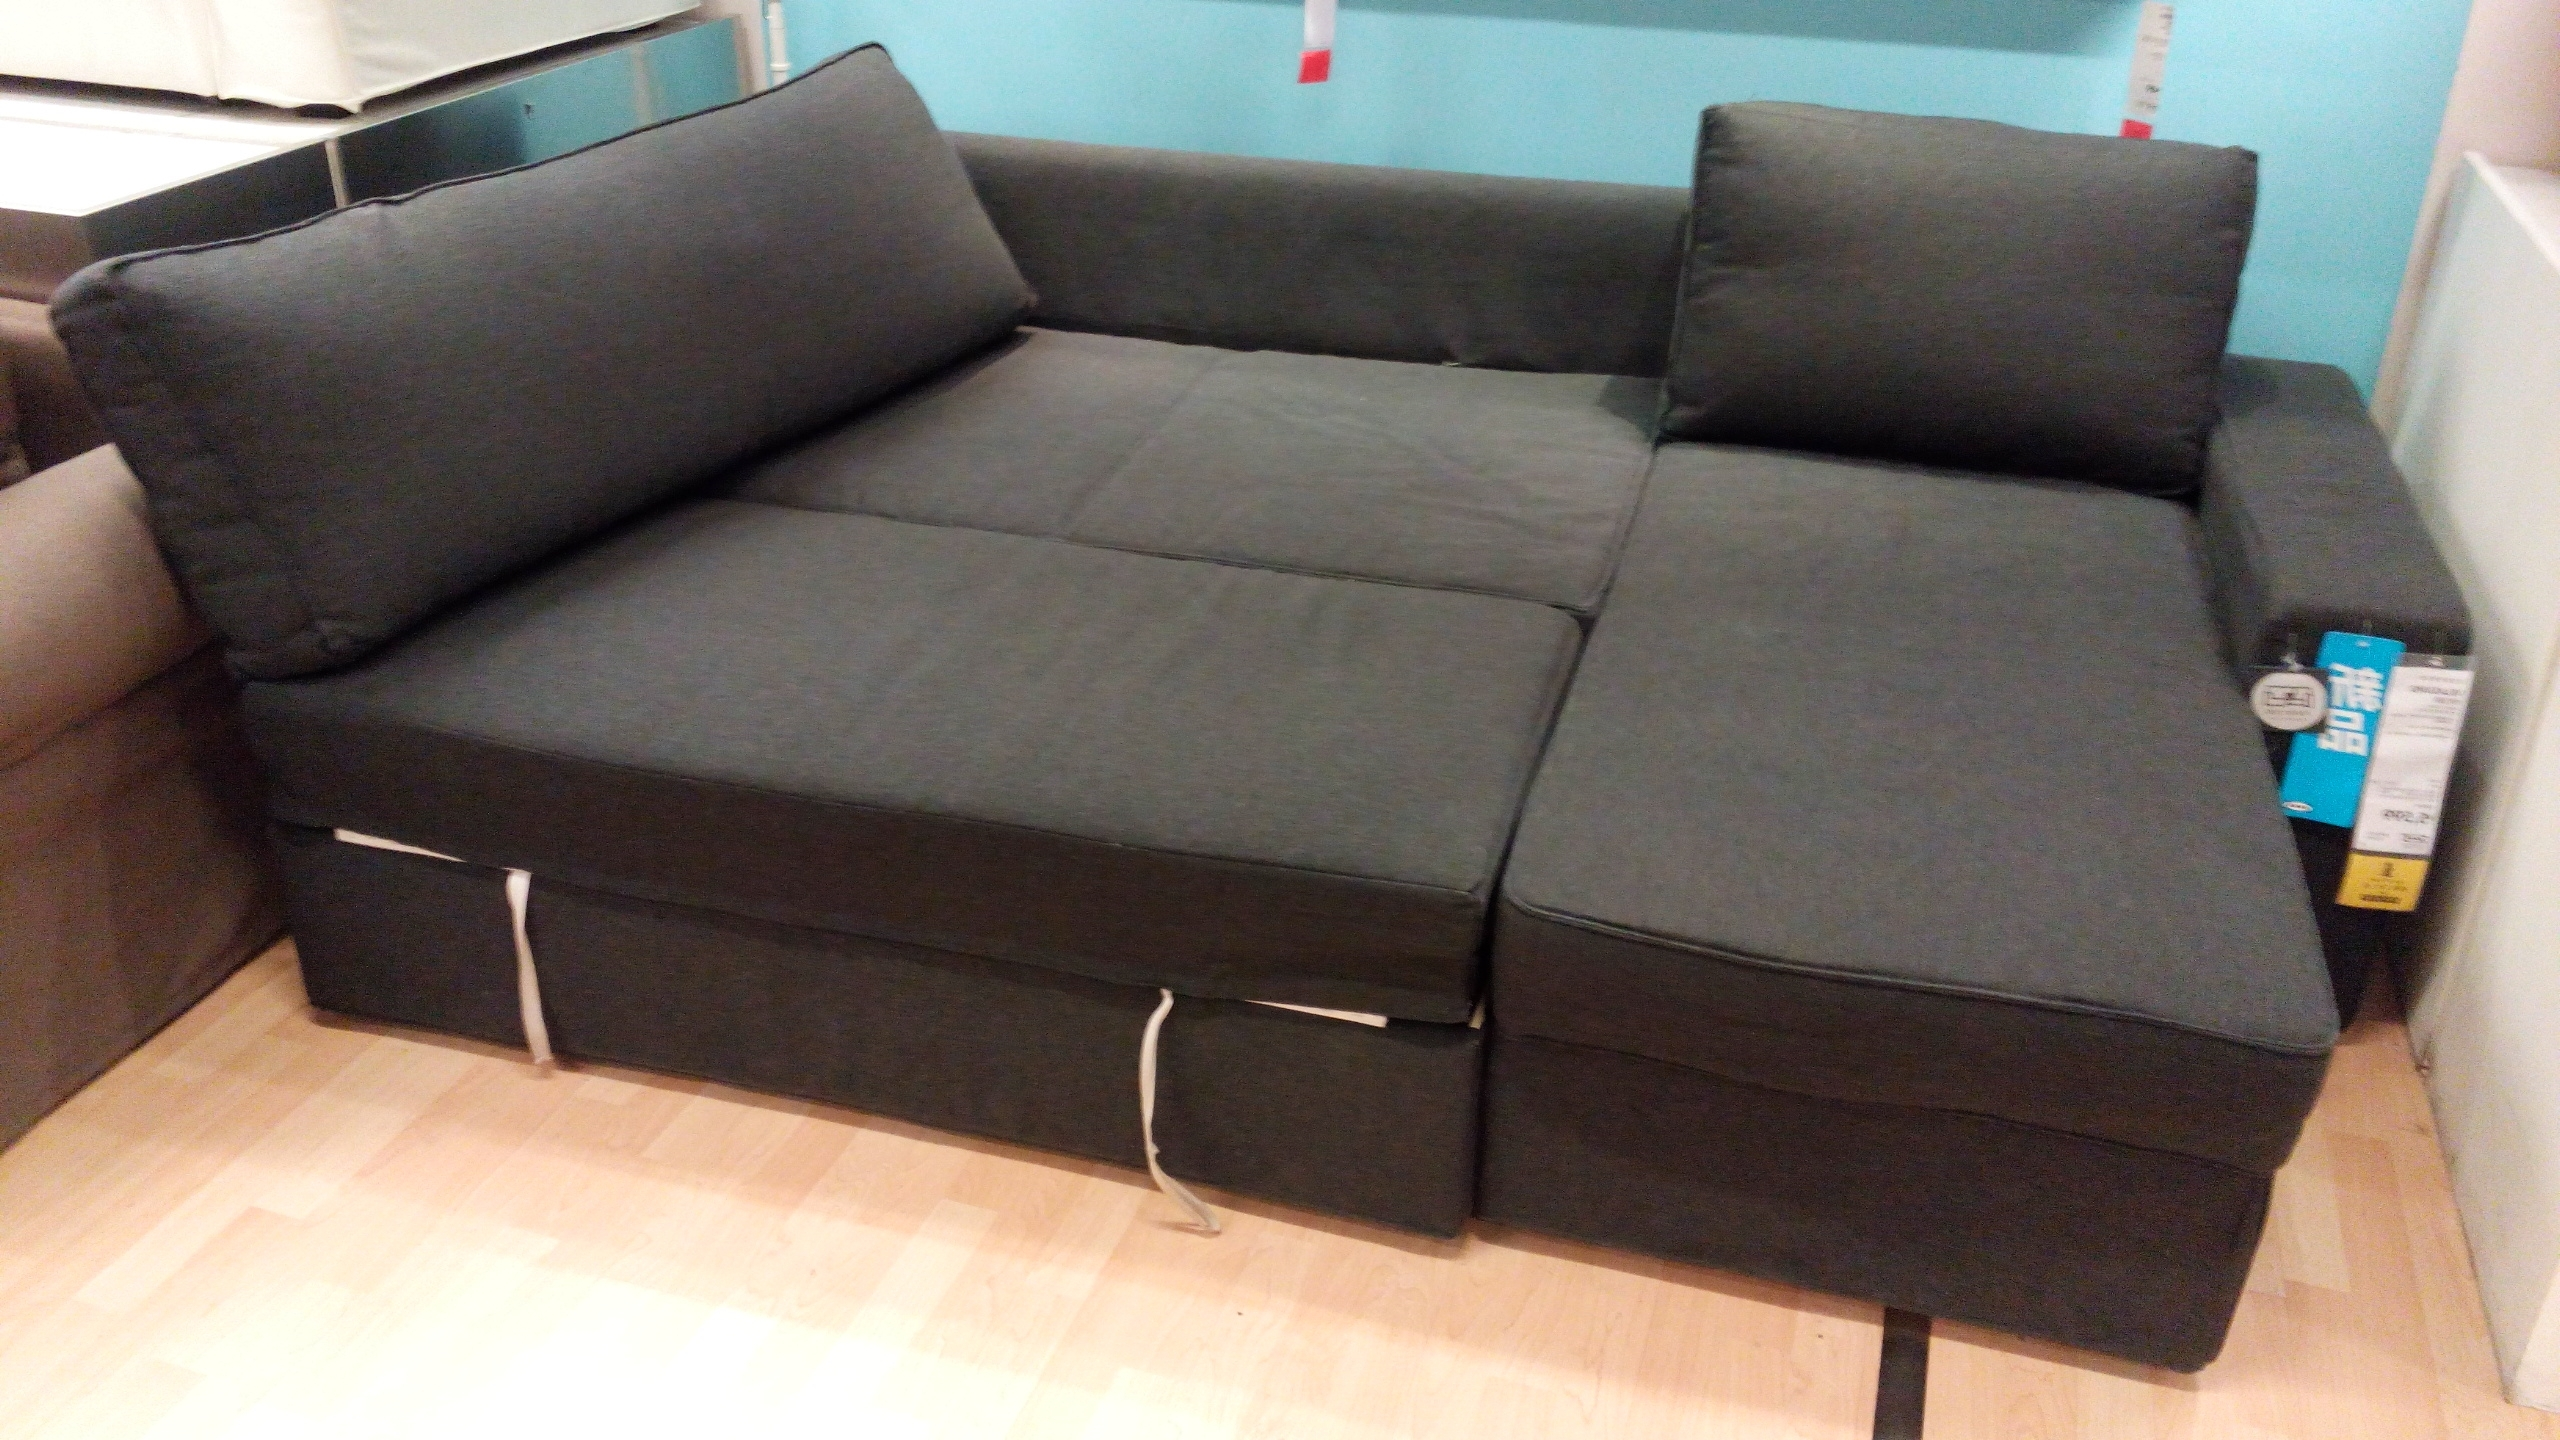 Chaise Sofa Beds For Well Known Ikea Vilasund And Backabro Review – Return Of The Sofa Bed Clones! (View 5 of 15)